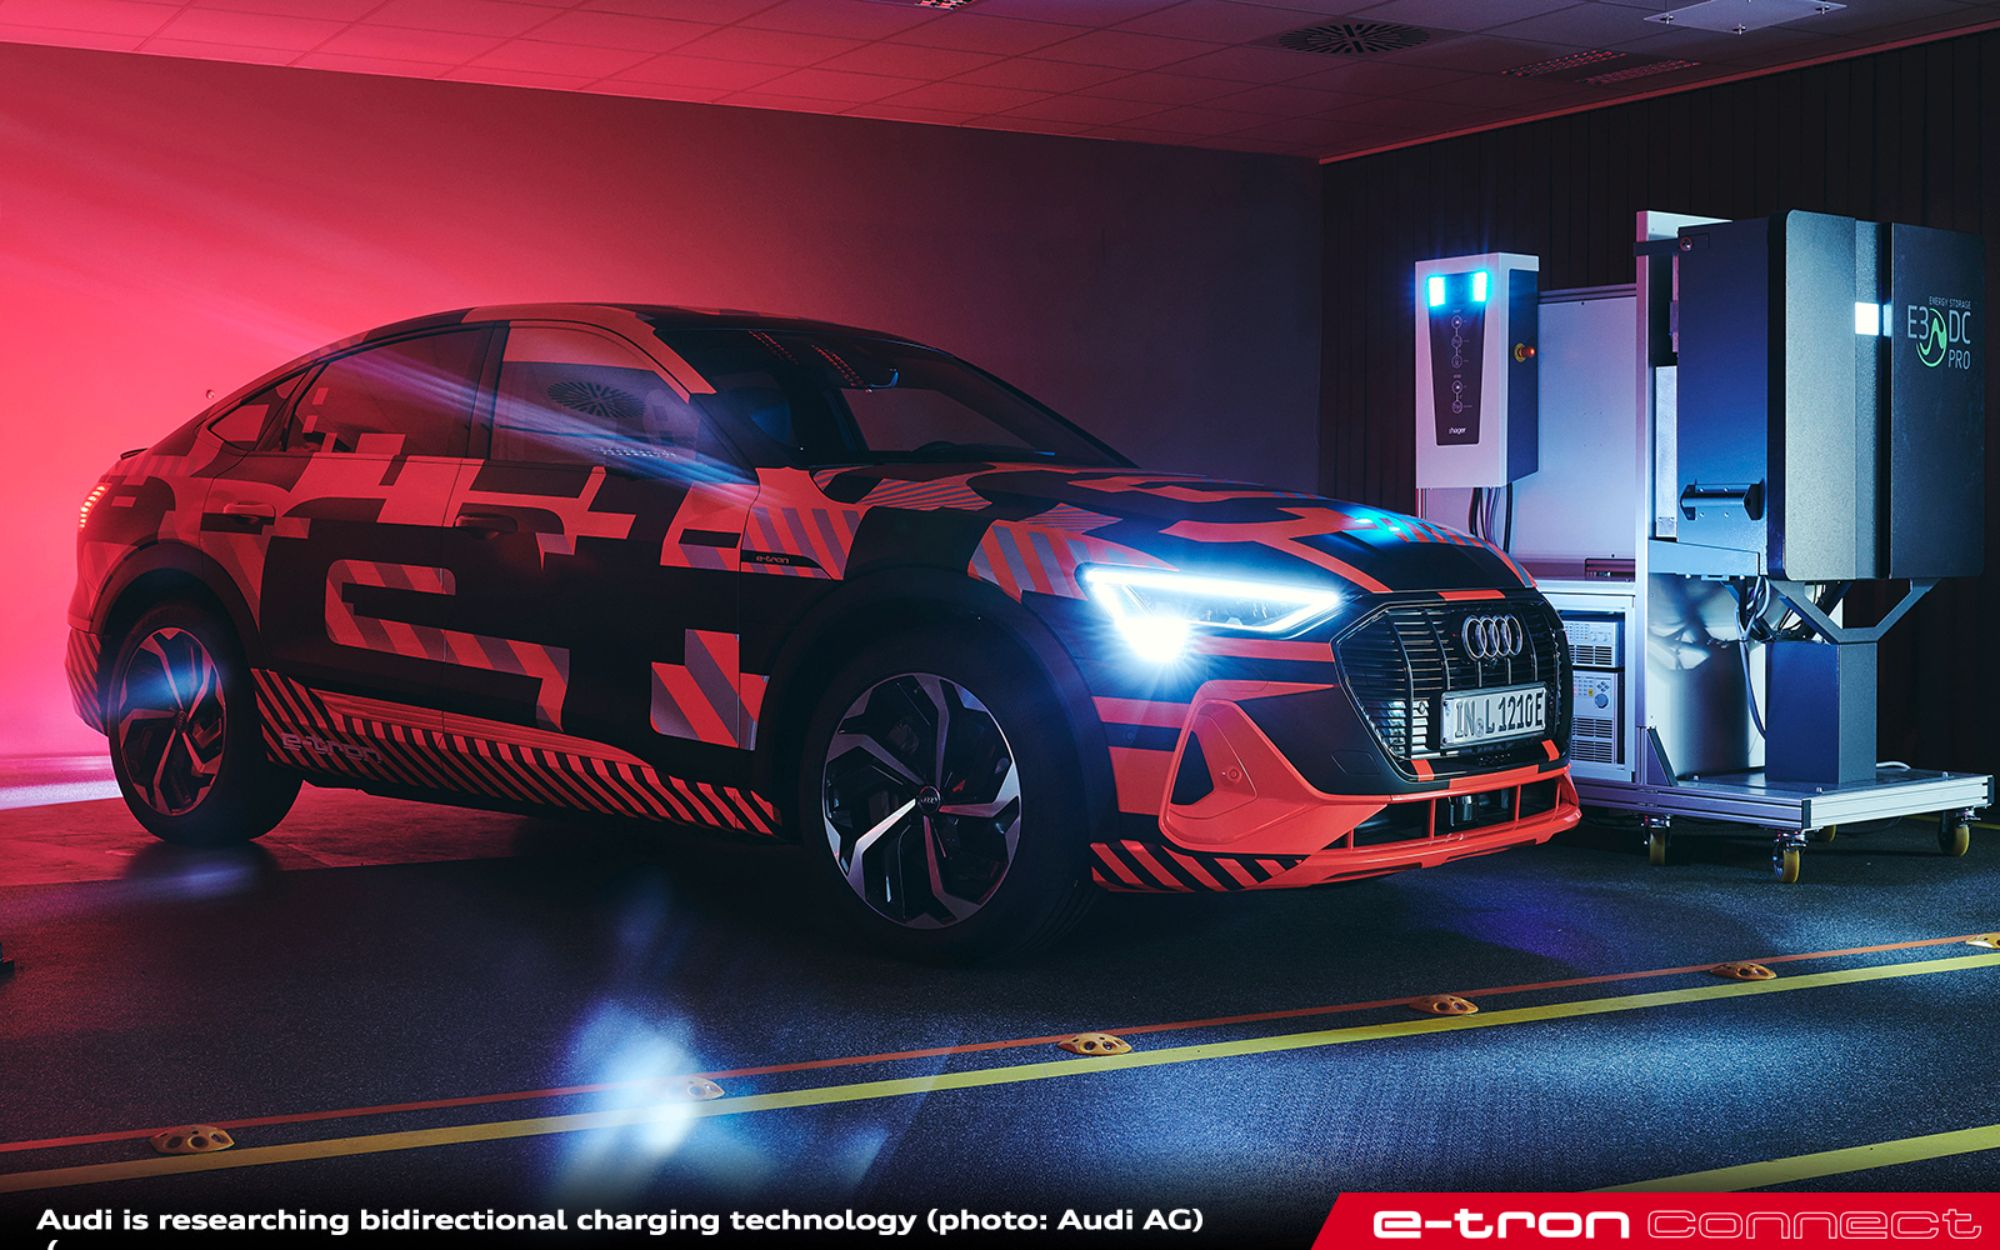 Electric Cars as Part of the Energy Transition: Audi Is Researching Bidirectional Charging Technology